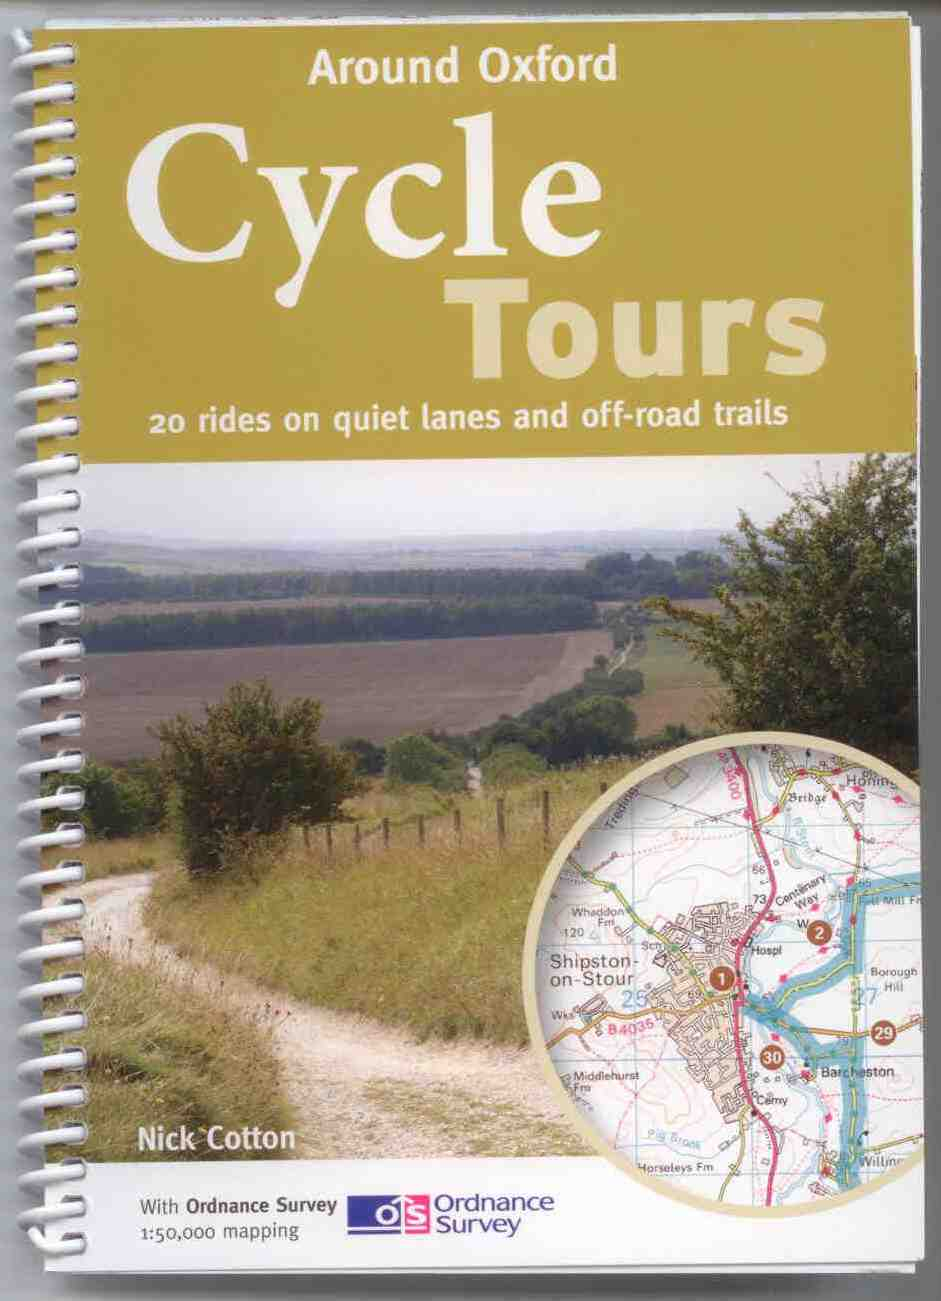 Oxford and Around Cycle Tours, CycleCity